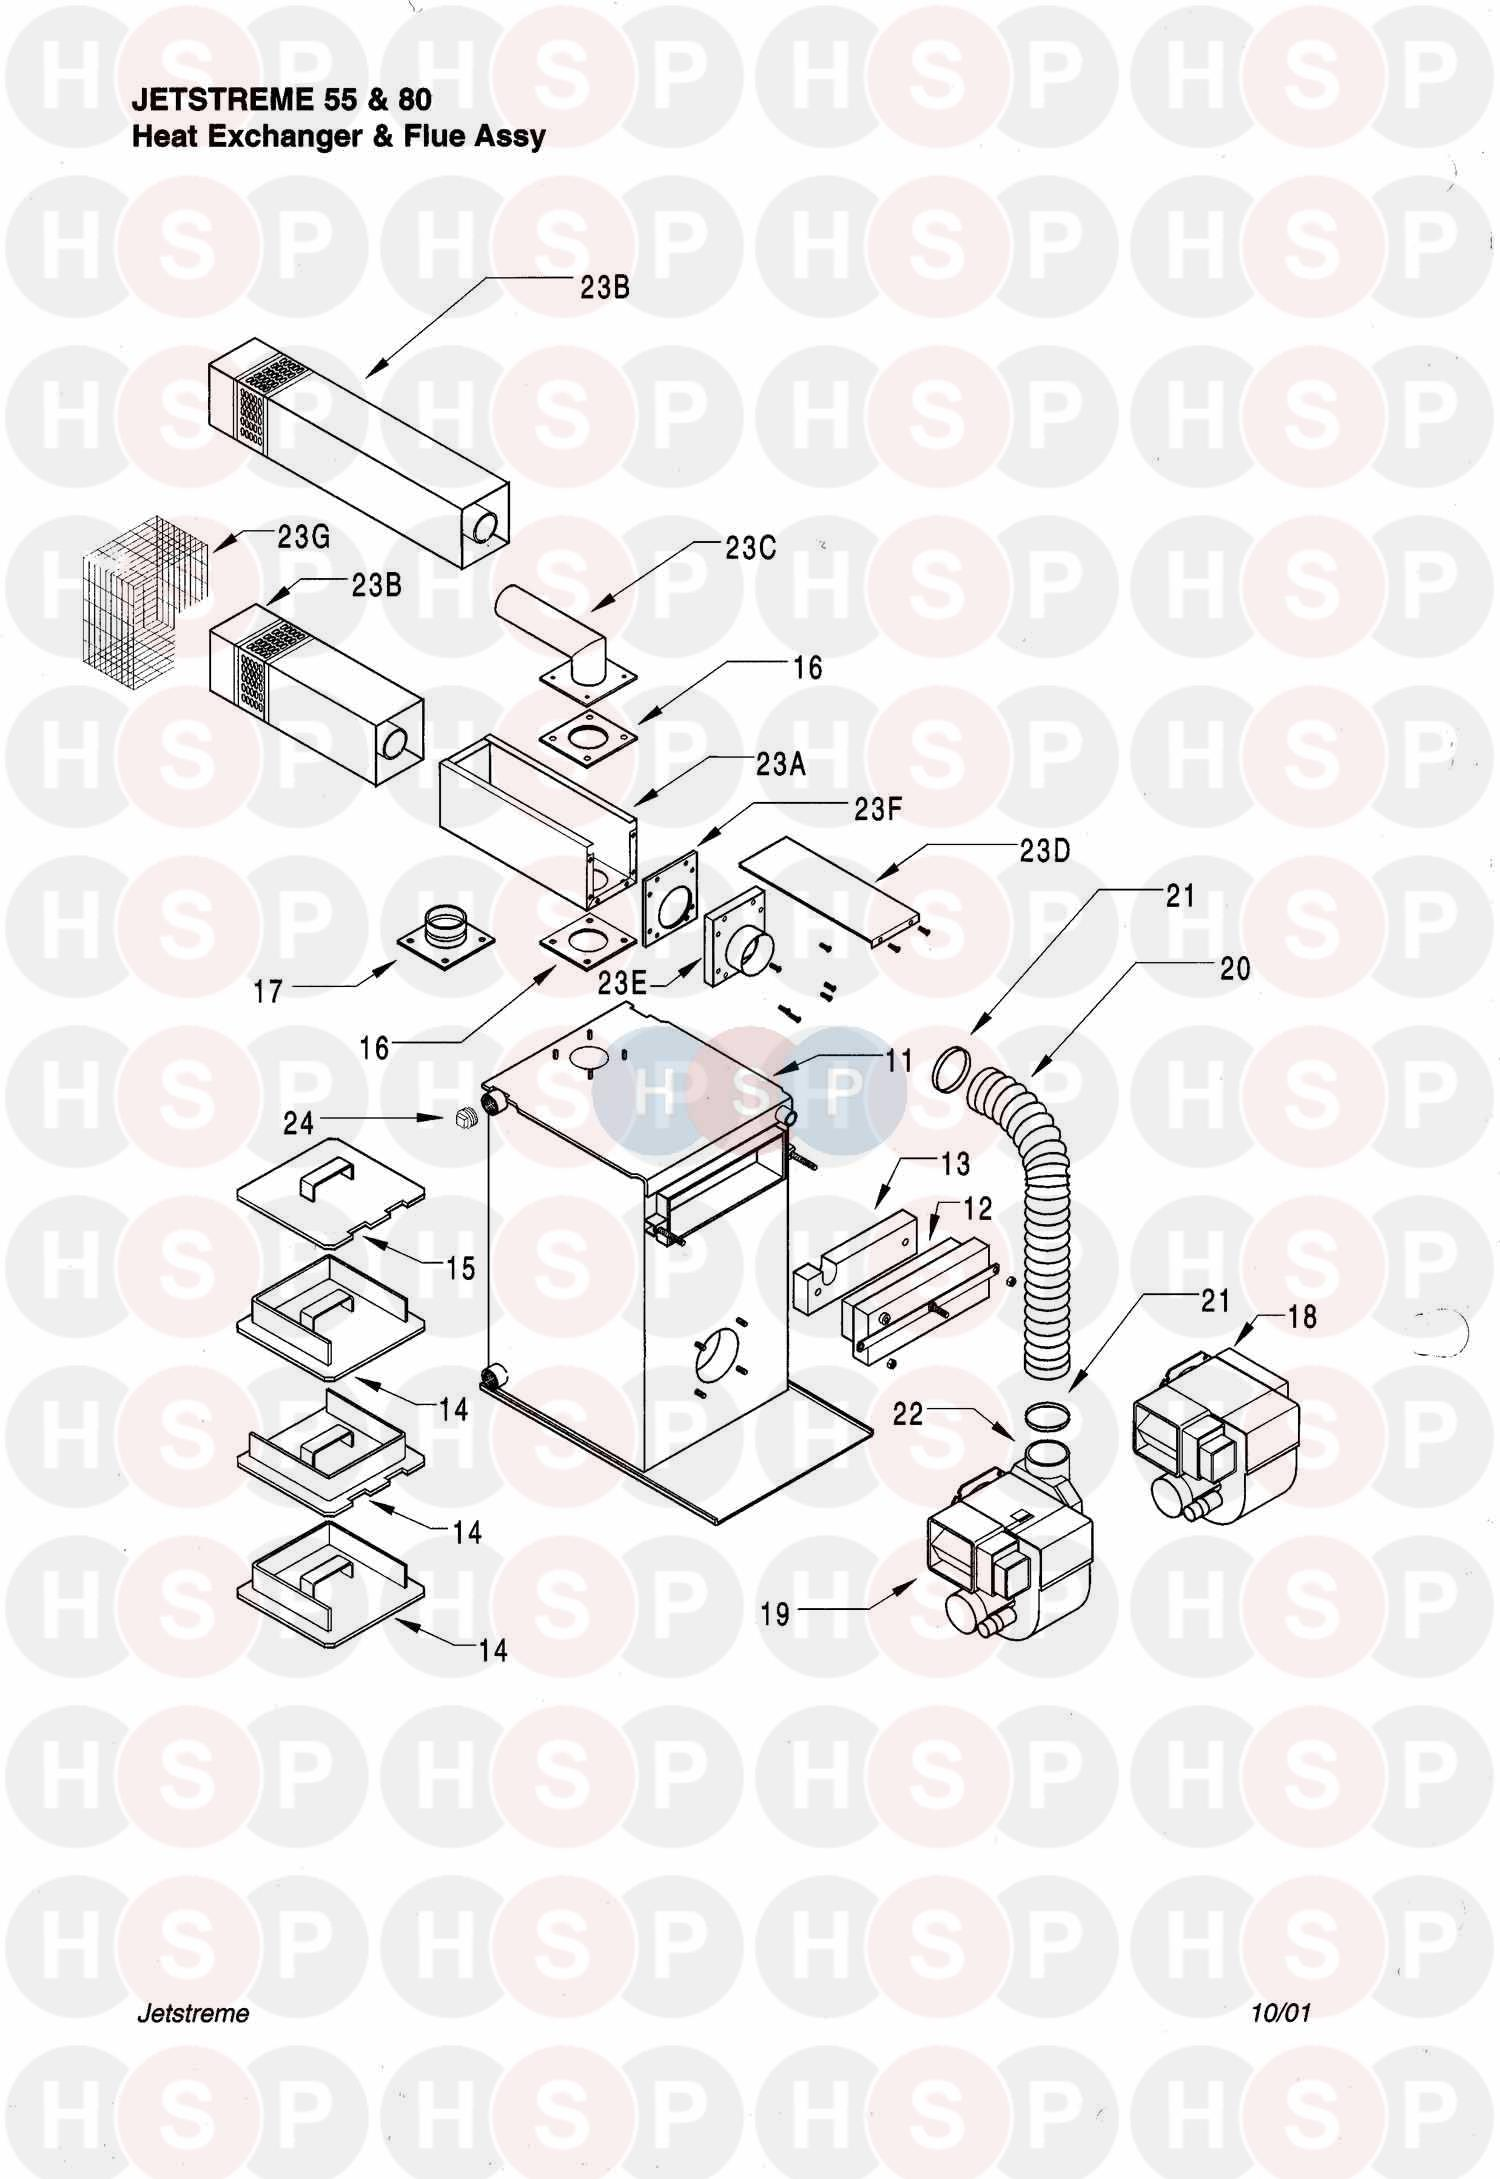 halstead jetstreme 55  heat exchanger  u0026 flue  diagram